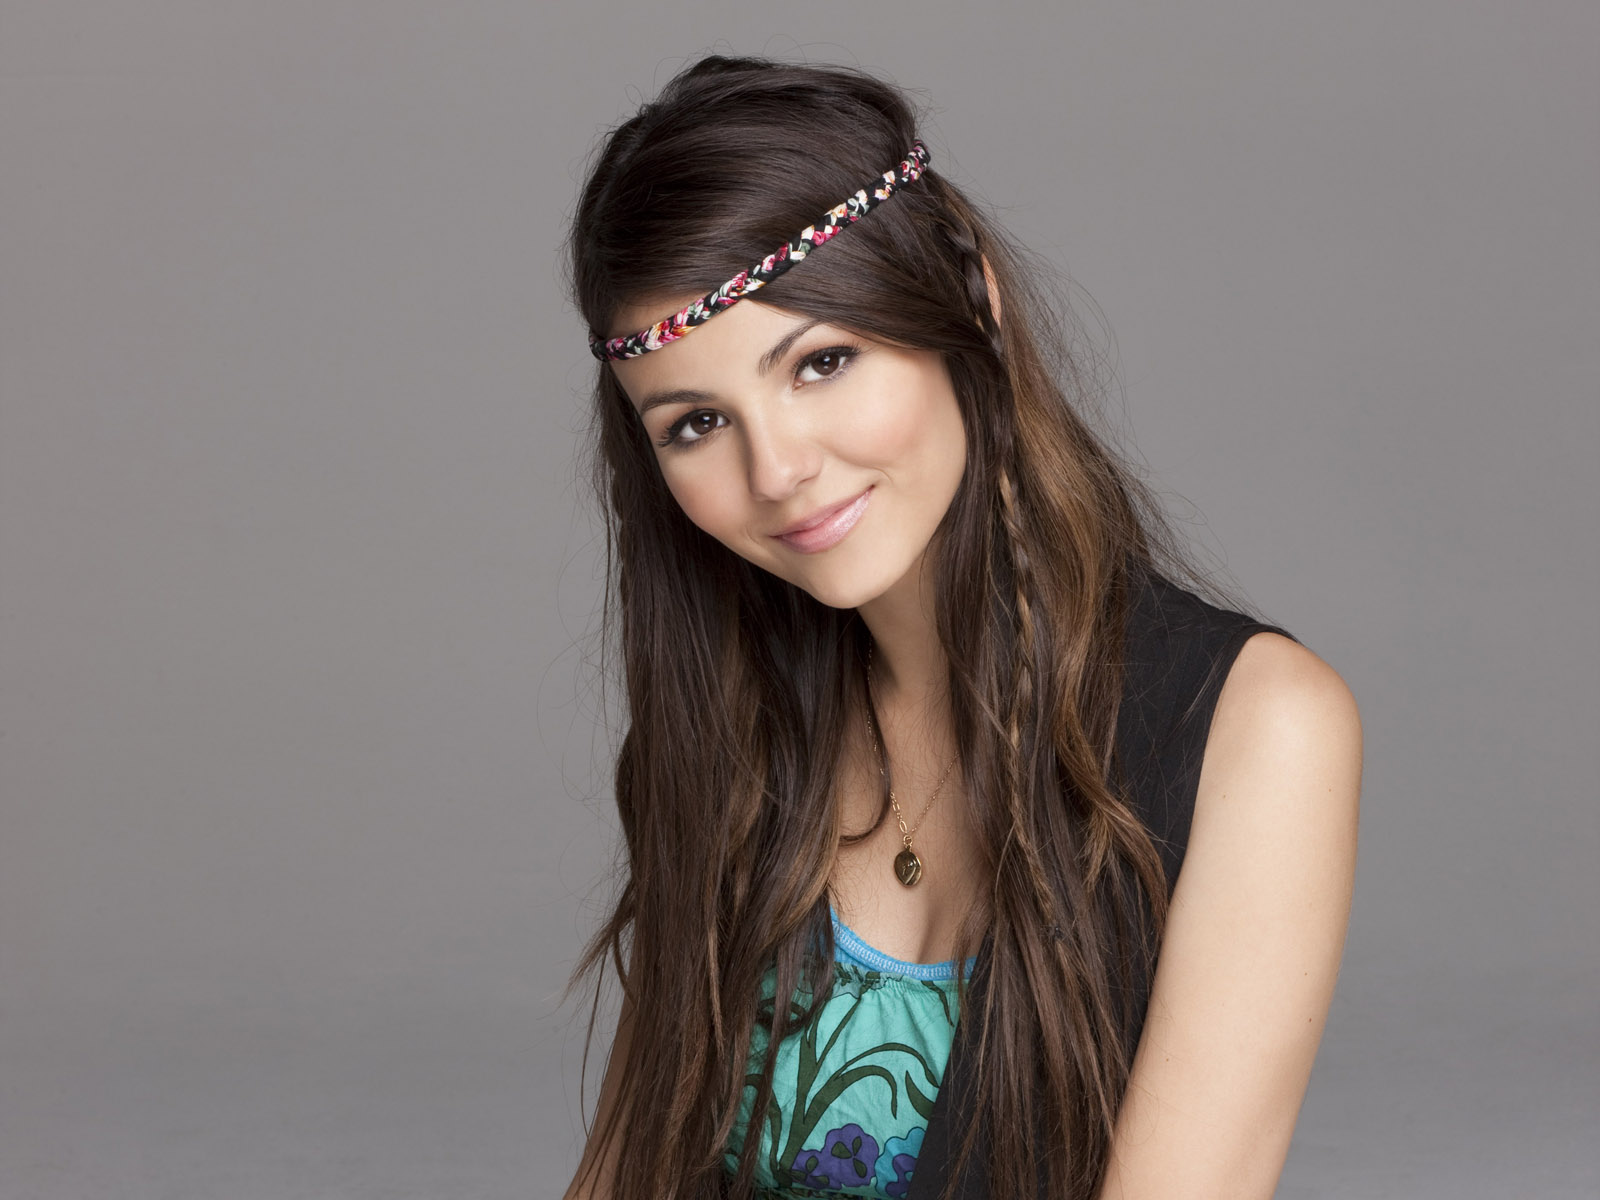 Beautiful Victoria Justice Pics Hd Wallpaper